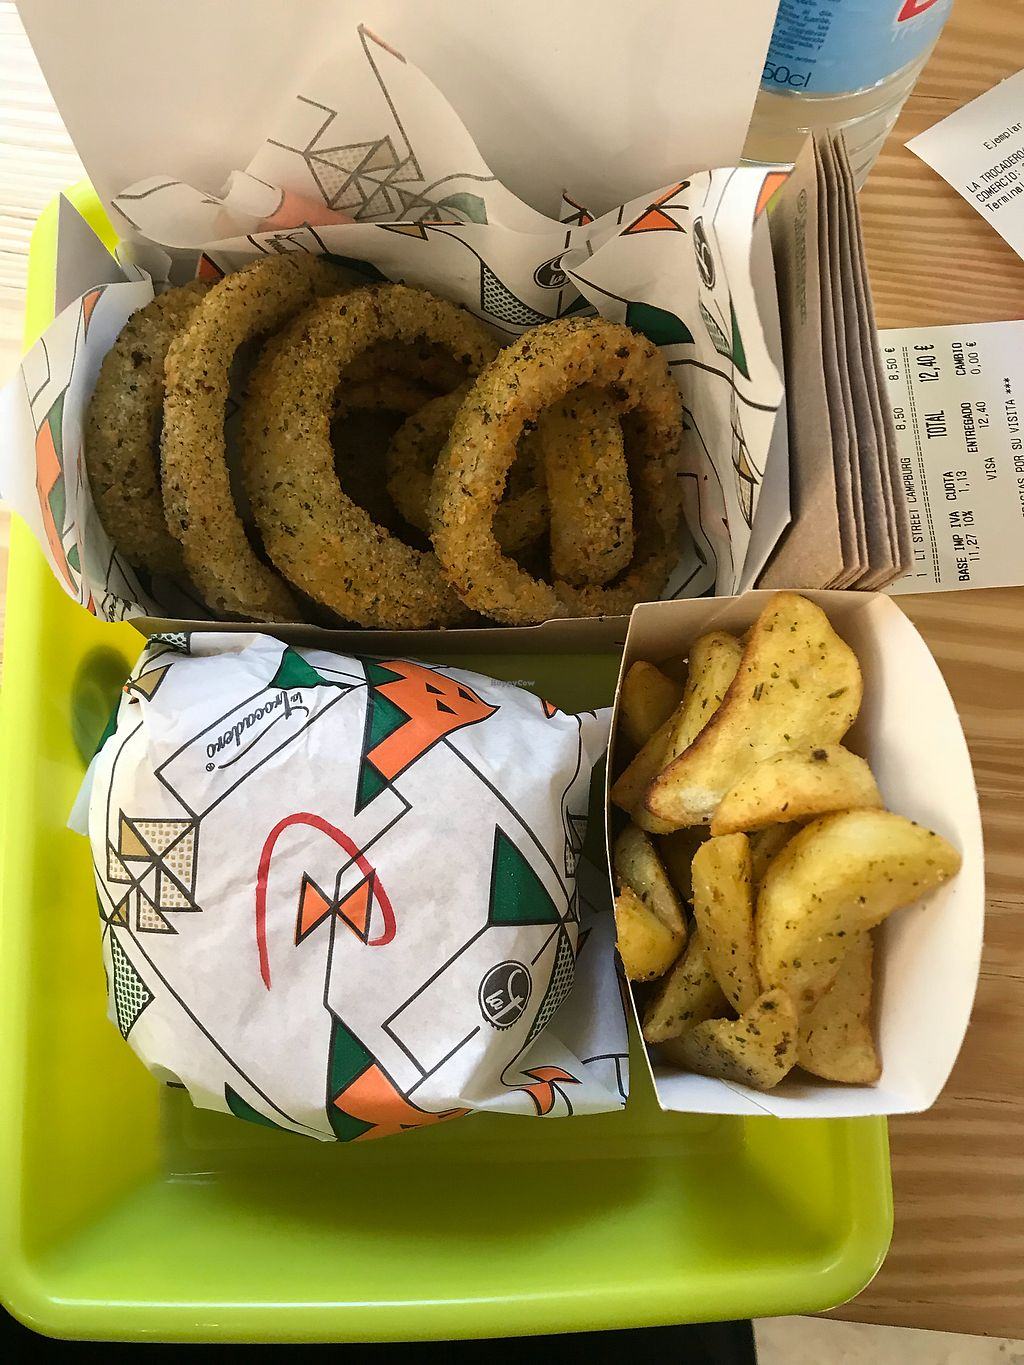 """Photo of La Trocadero  by <a href=""""/members/profile/amberley.may"""">amberley.may</a> <br/>Burger, wedges and onion rings! :) <br/> March 2, 2018  - <a href='/contact/abuse/image/85913/365841'>Report</a>"""